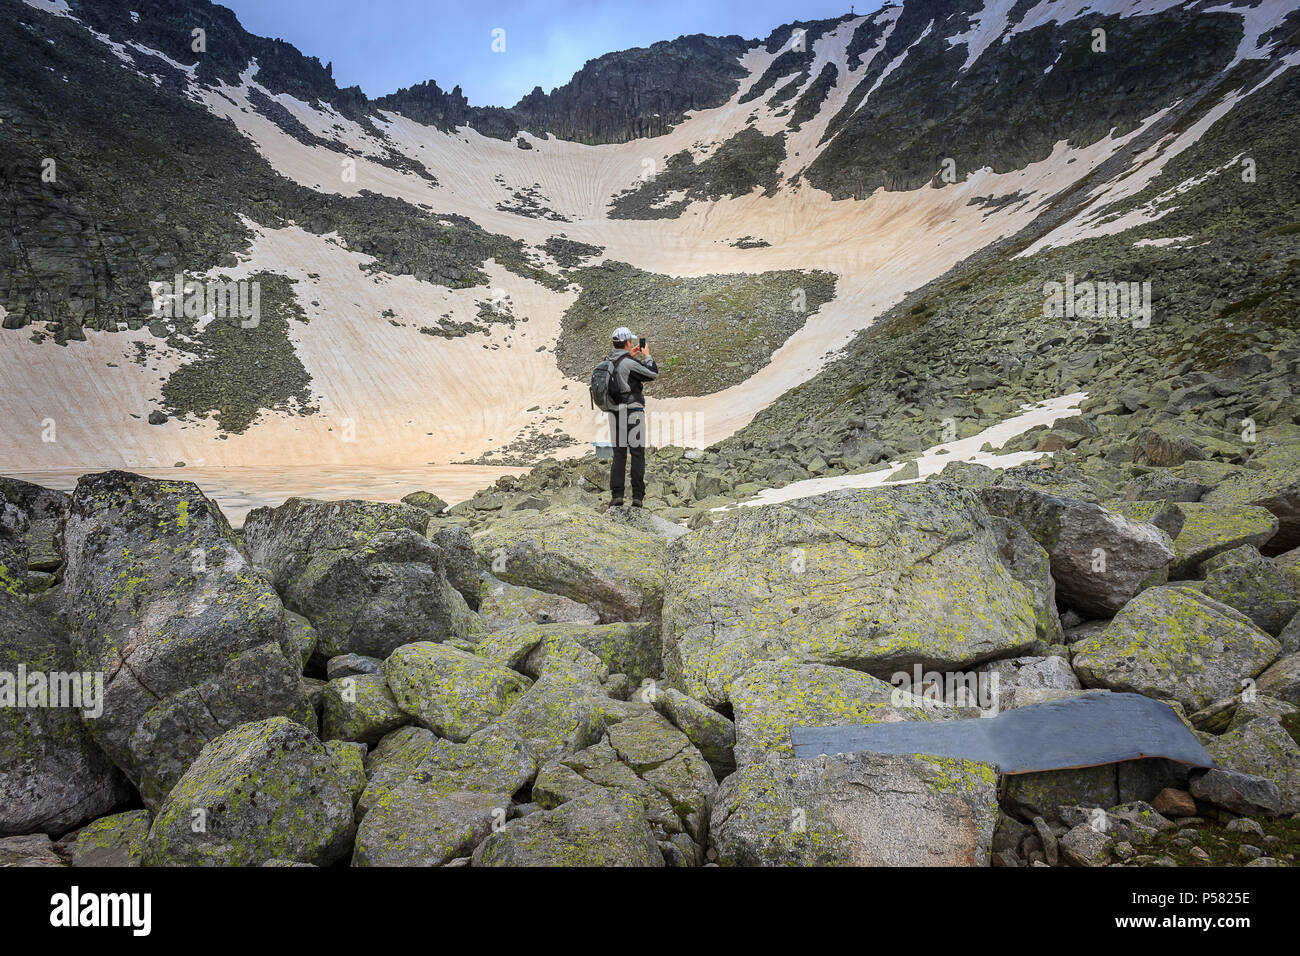 Hiker with backpack taking photo with his mobile phone of Frozen lake and snowy landscape on Rila mountain on the track to Musala hilltop - Stock Image